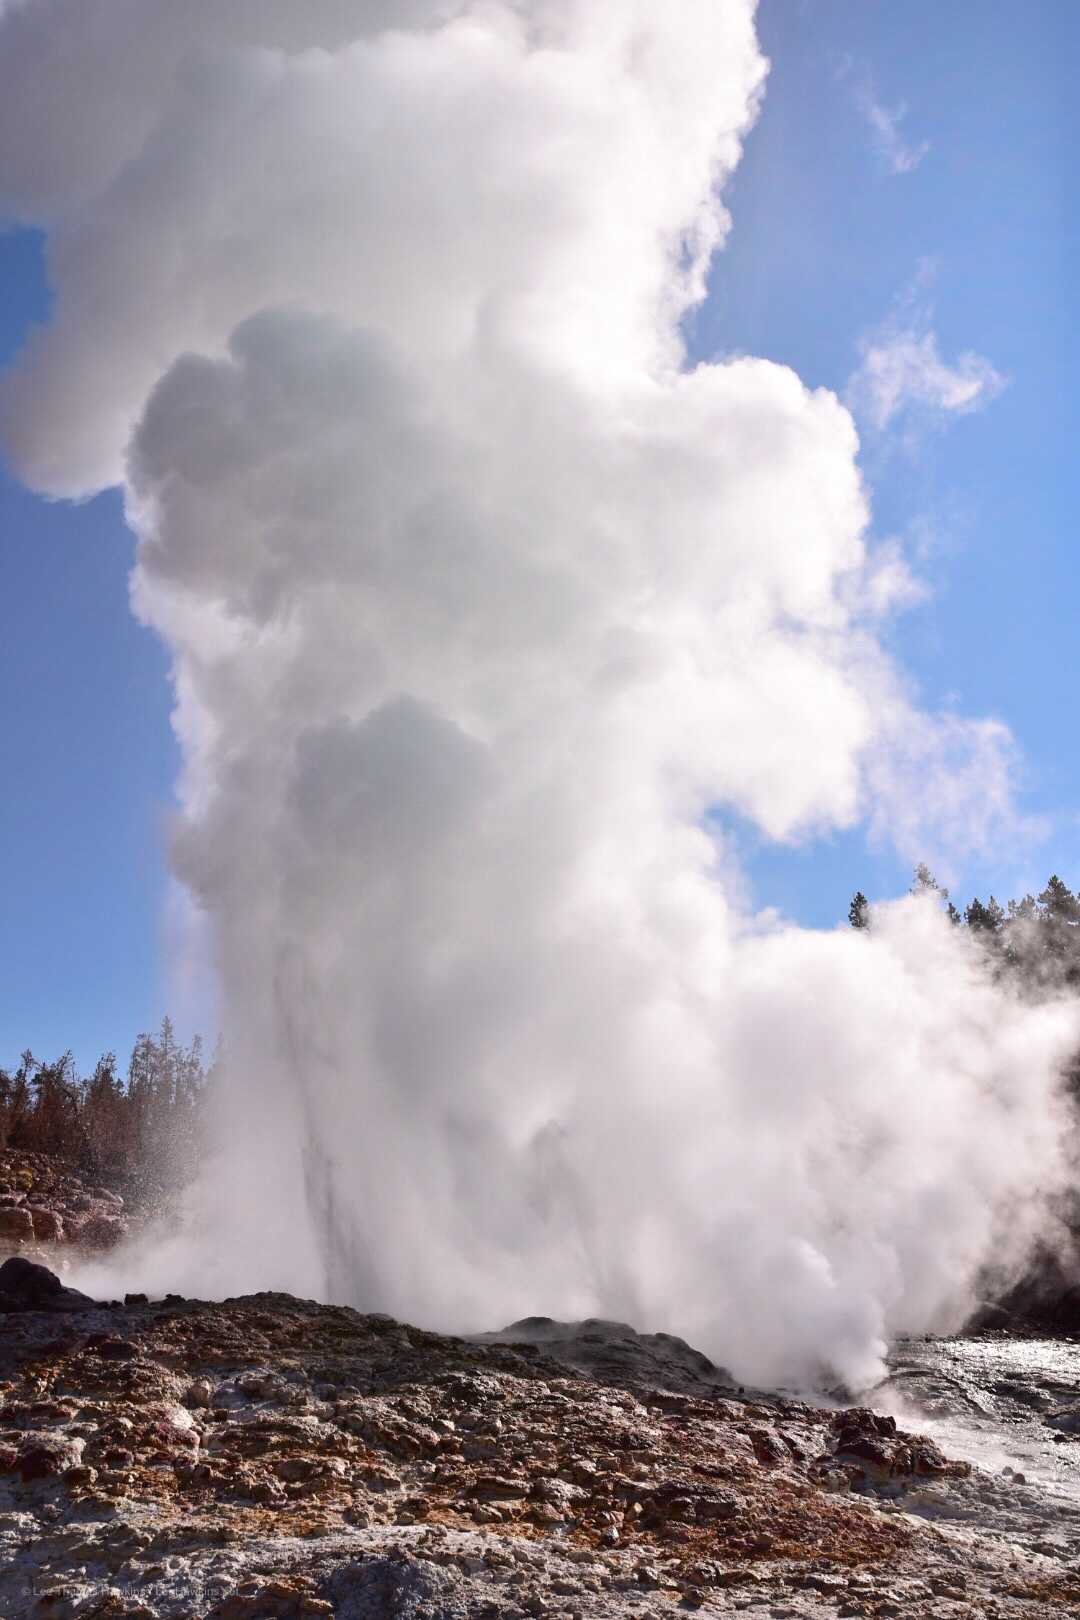 A large geyser erupting with hot water and huge plume of steam.